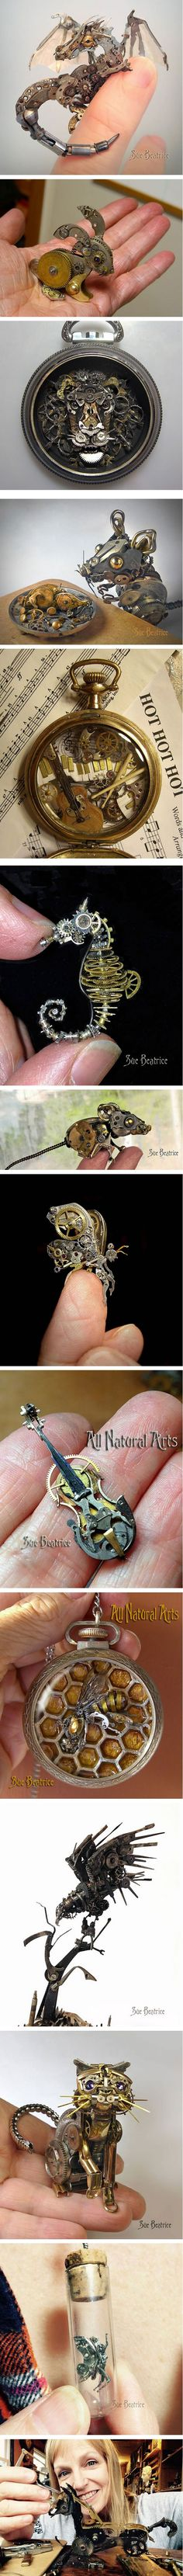 This Artist Recycles Old Watch Parts Into Steampunk Sculptures (By Susan Beatrice)